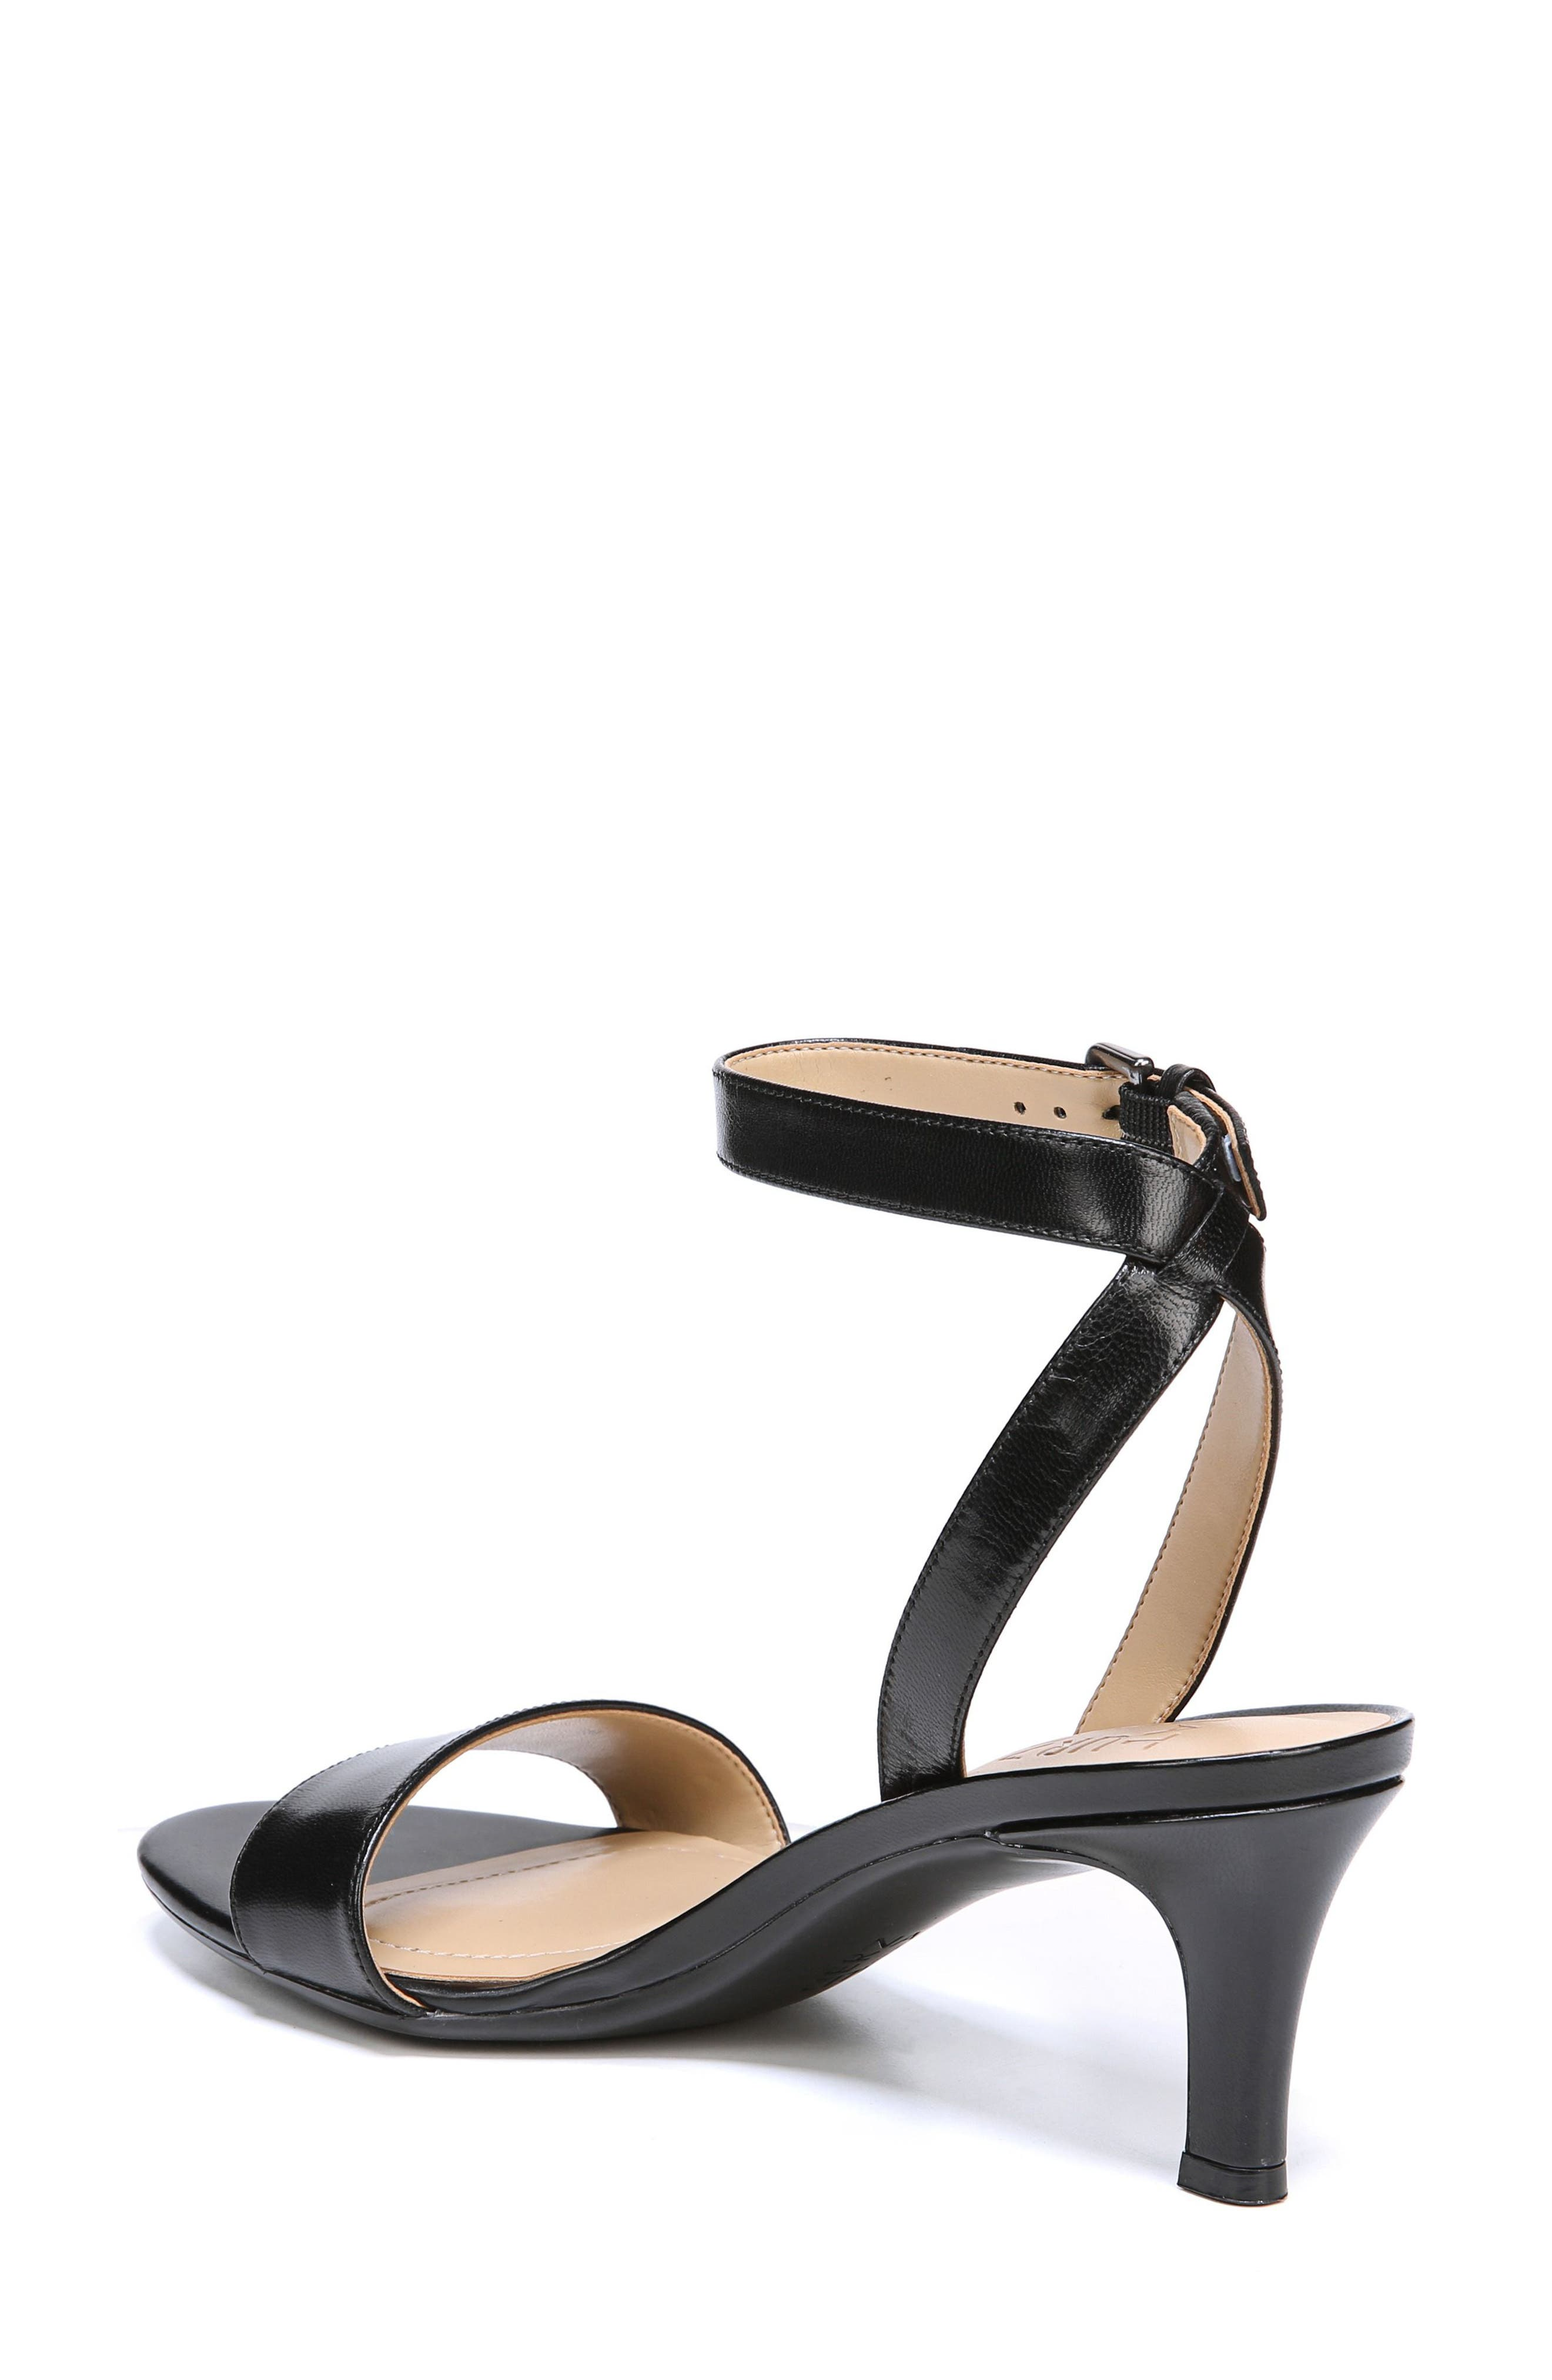 Tinda Sandal,                             Alternate thumbnail 2, color,                             BLACK LEATHER